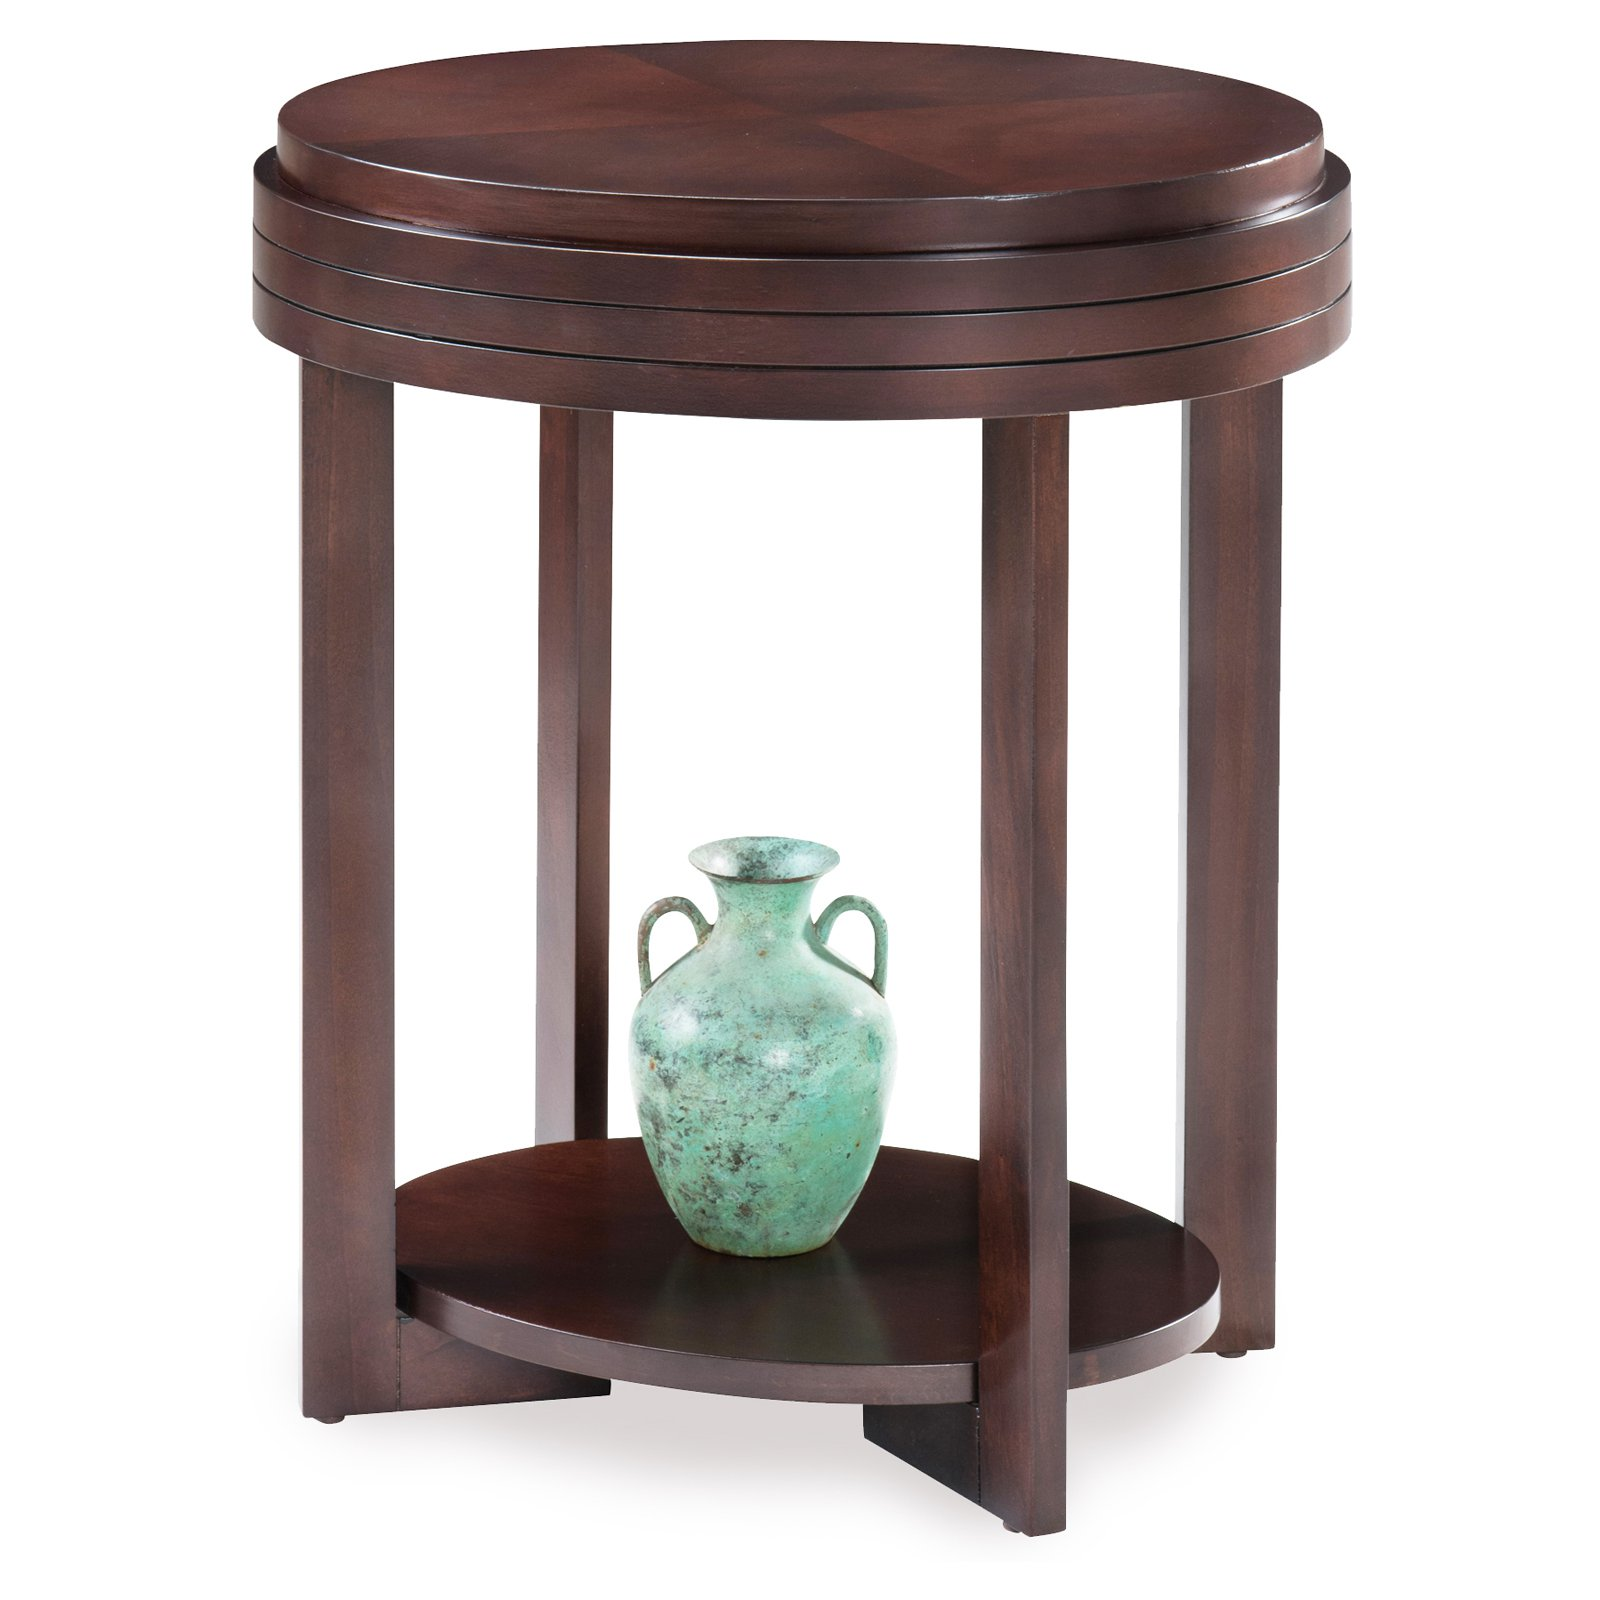 Leick Home Oval End Table